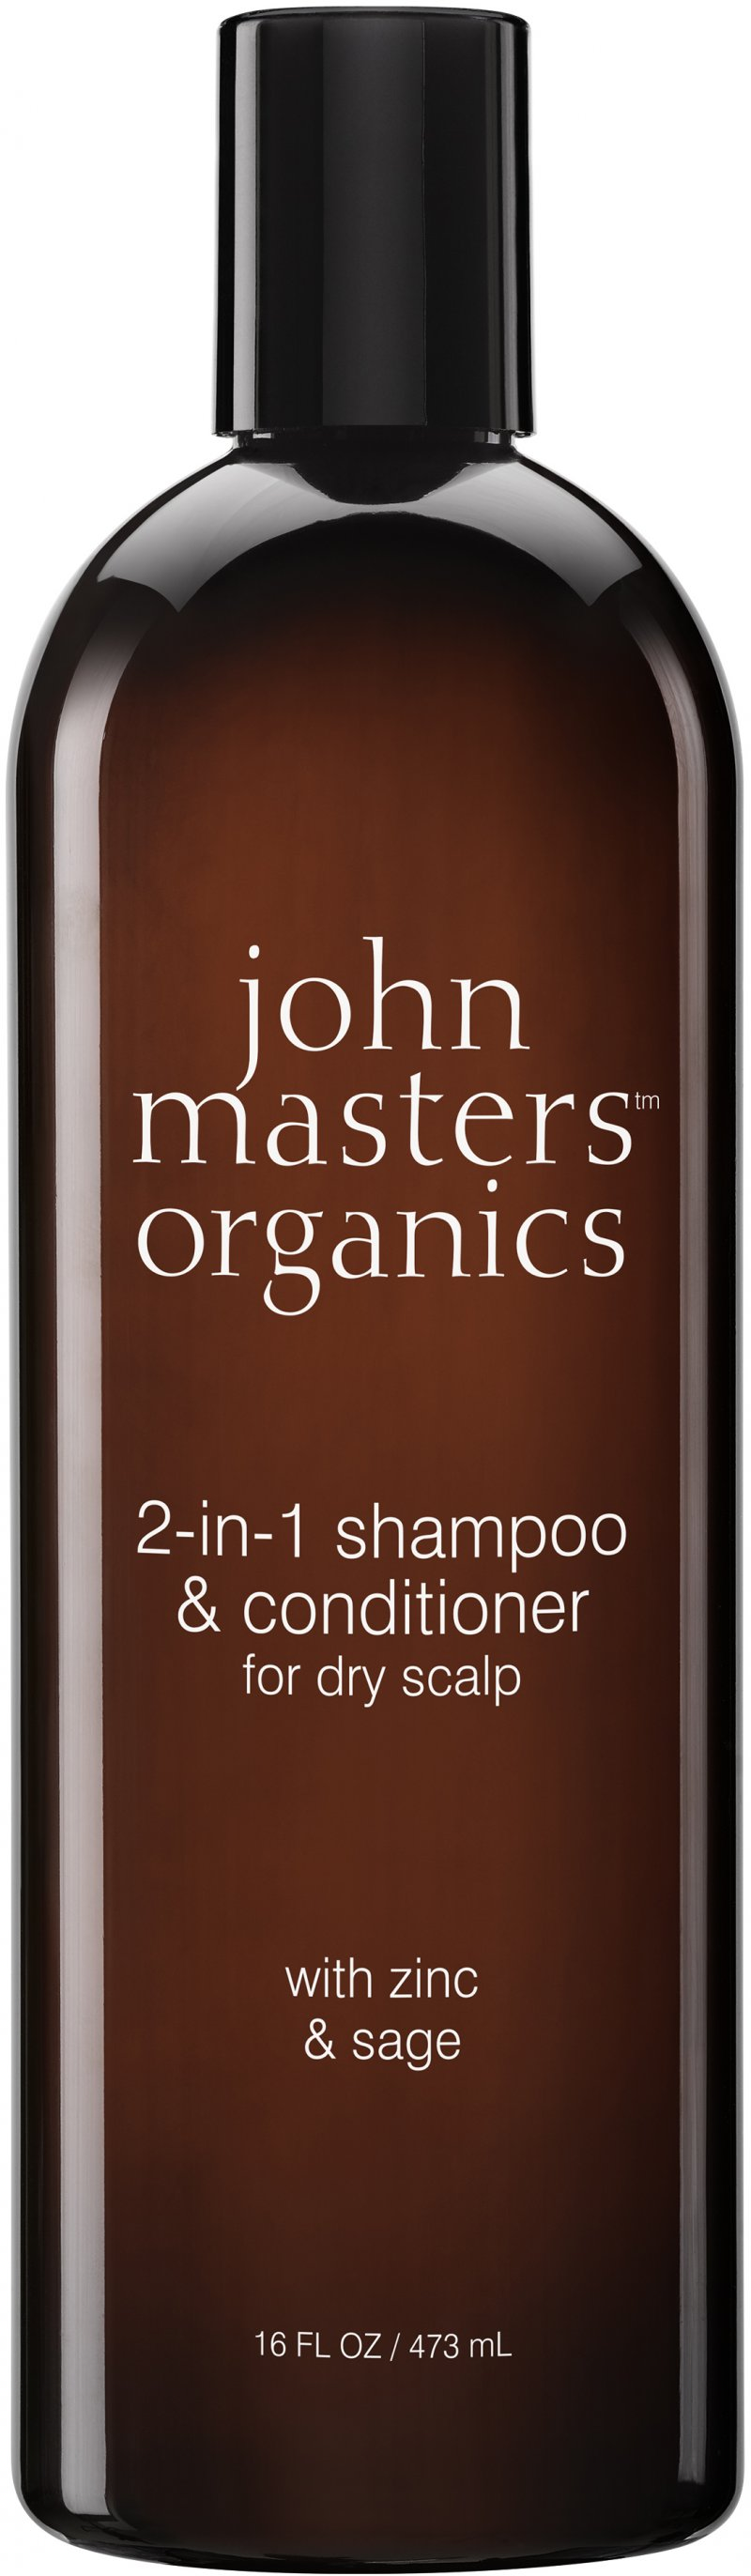 Image of   John Masters Organics Zinc And Sage Shampoo Med Conditioner - 473 Ml.